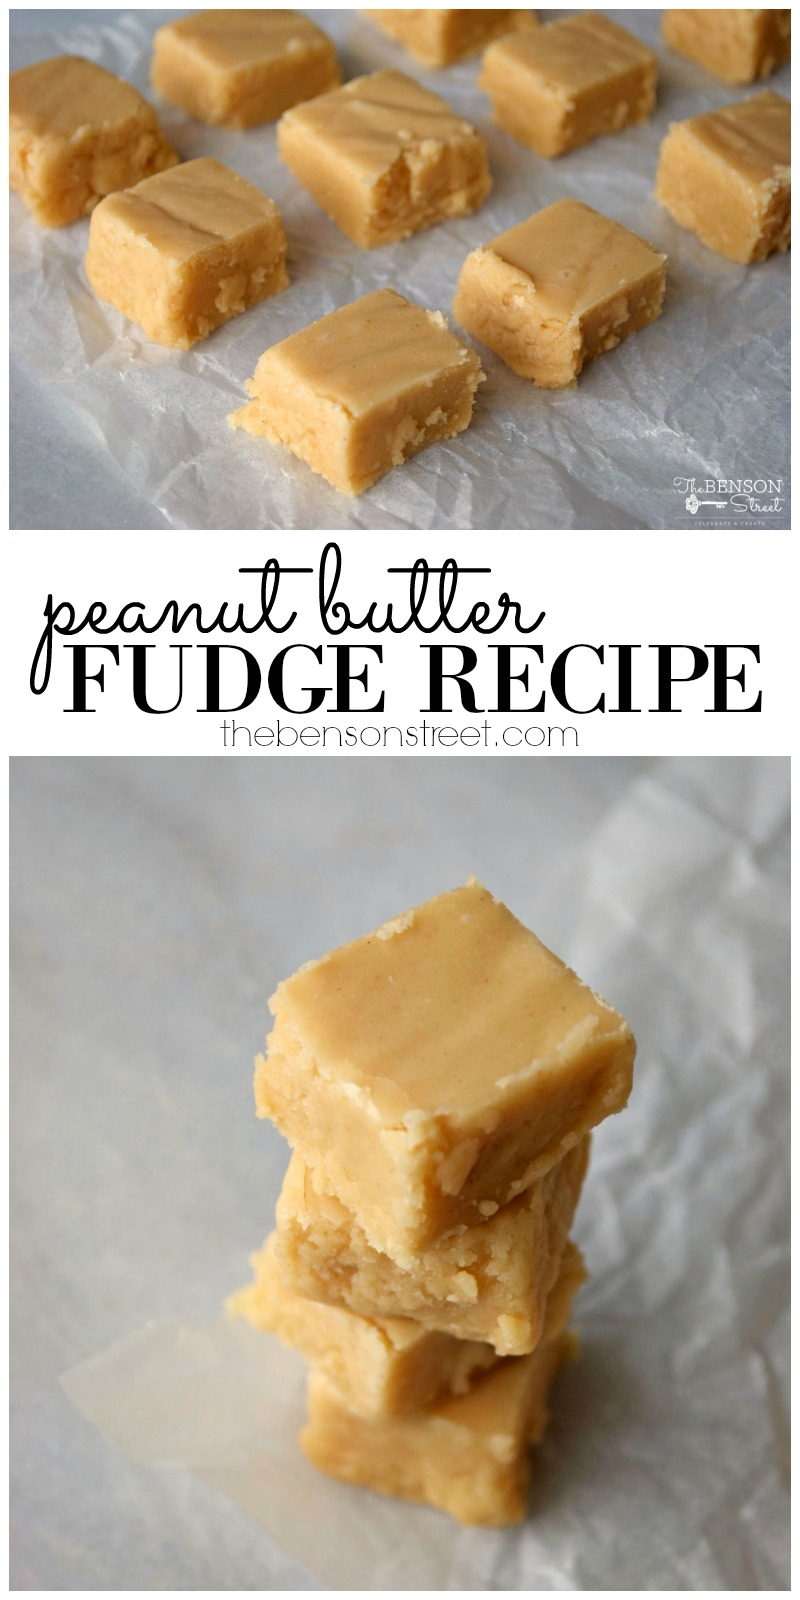 Looking for a treat for that special someone, a party, or for yourself? Try out this twist on an old favorite sweet with this peanut butter fudge recipe at thebensonstreet.com